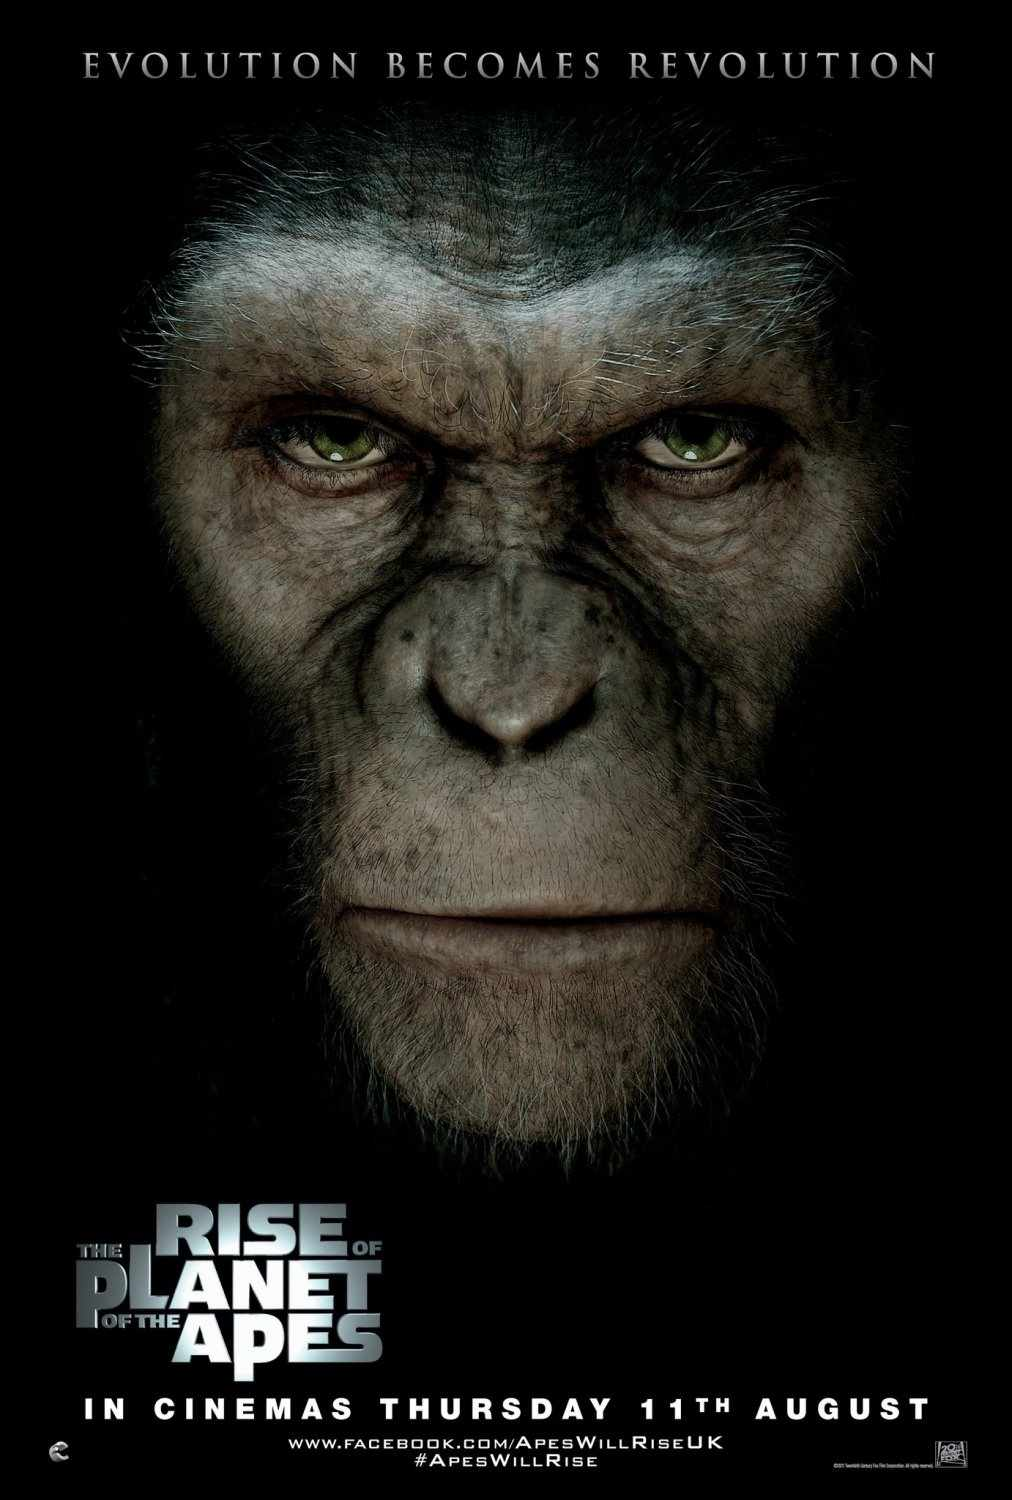 http://3.bp.blogspot.com/-Jc5FueuX99w/Ti6U1dS6_ZI/AAAAAAAAChk/ql4IxOC4JOQ/s1600/rise-of-the-planet-of-the-apes-movie-poster-3.jpg